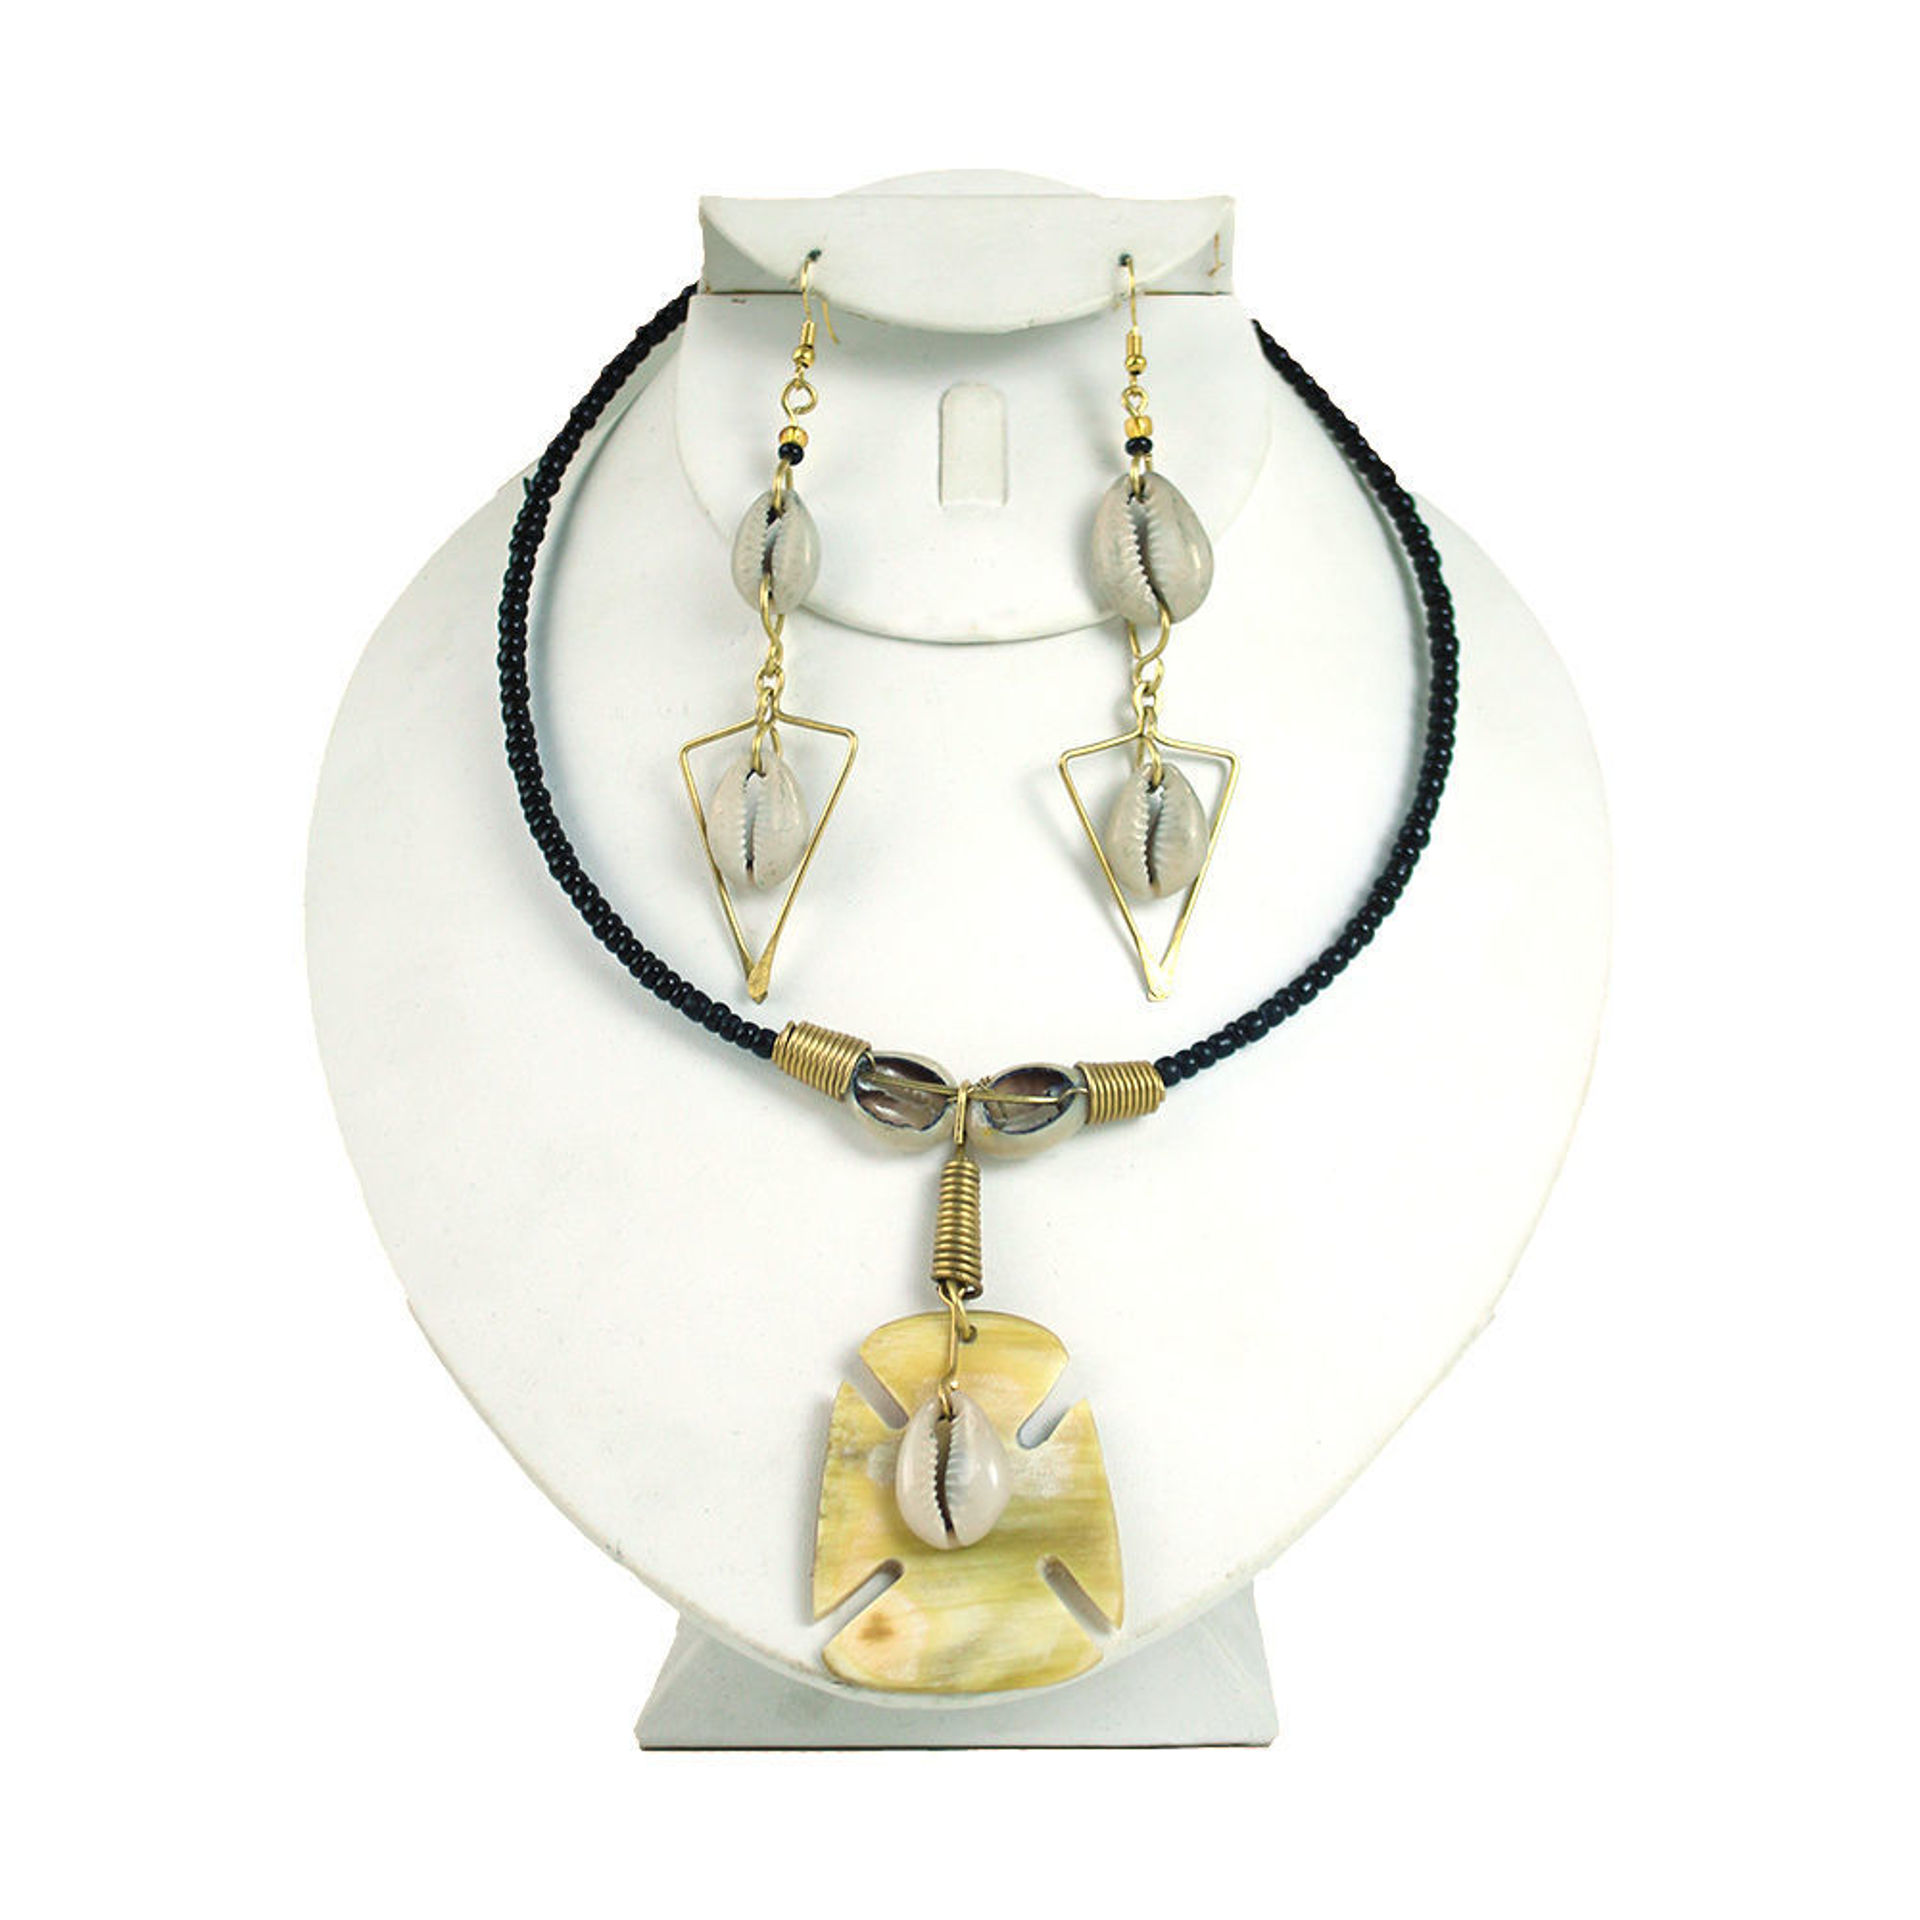 Picture of Adinkra Bone Cross Necklace Set - Small